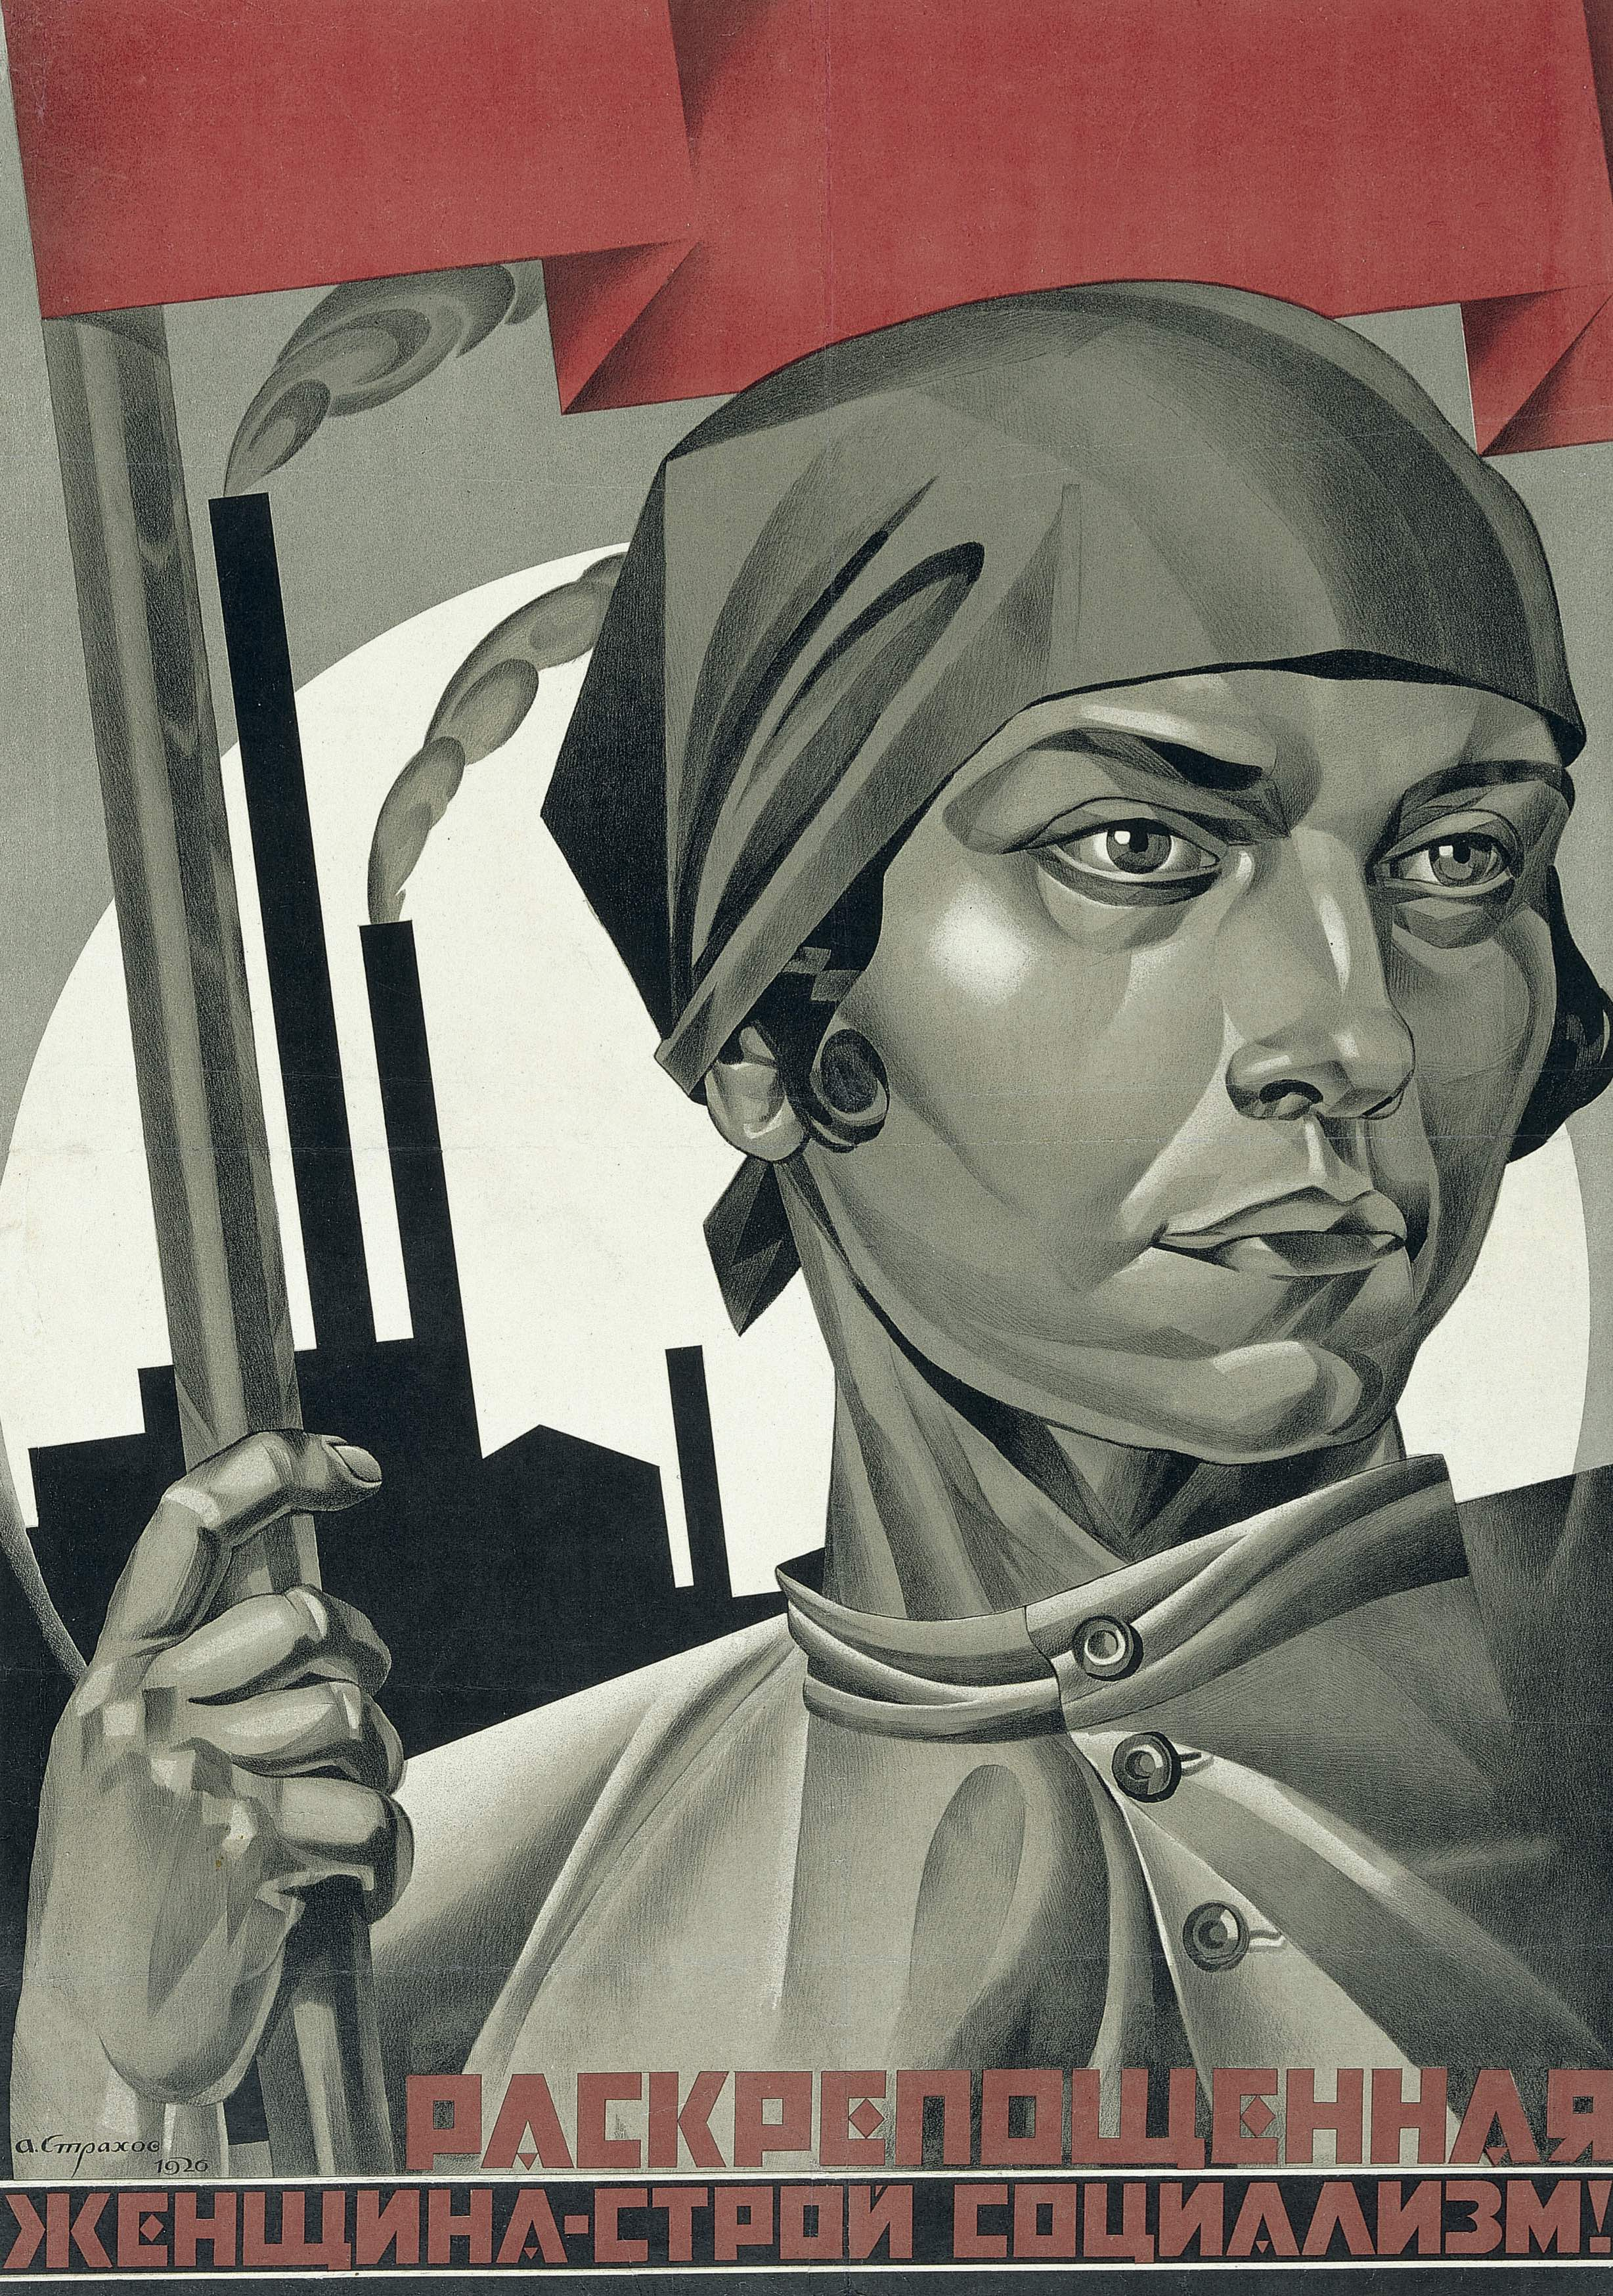 Adolf Strakhov, Emancipated Woman – Build Socialism!, 1926. Purchased 2016. The David King Collection at Tate